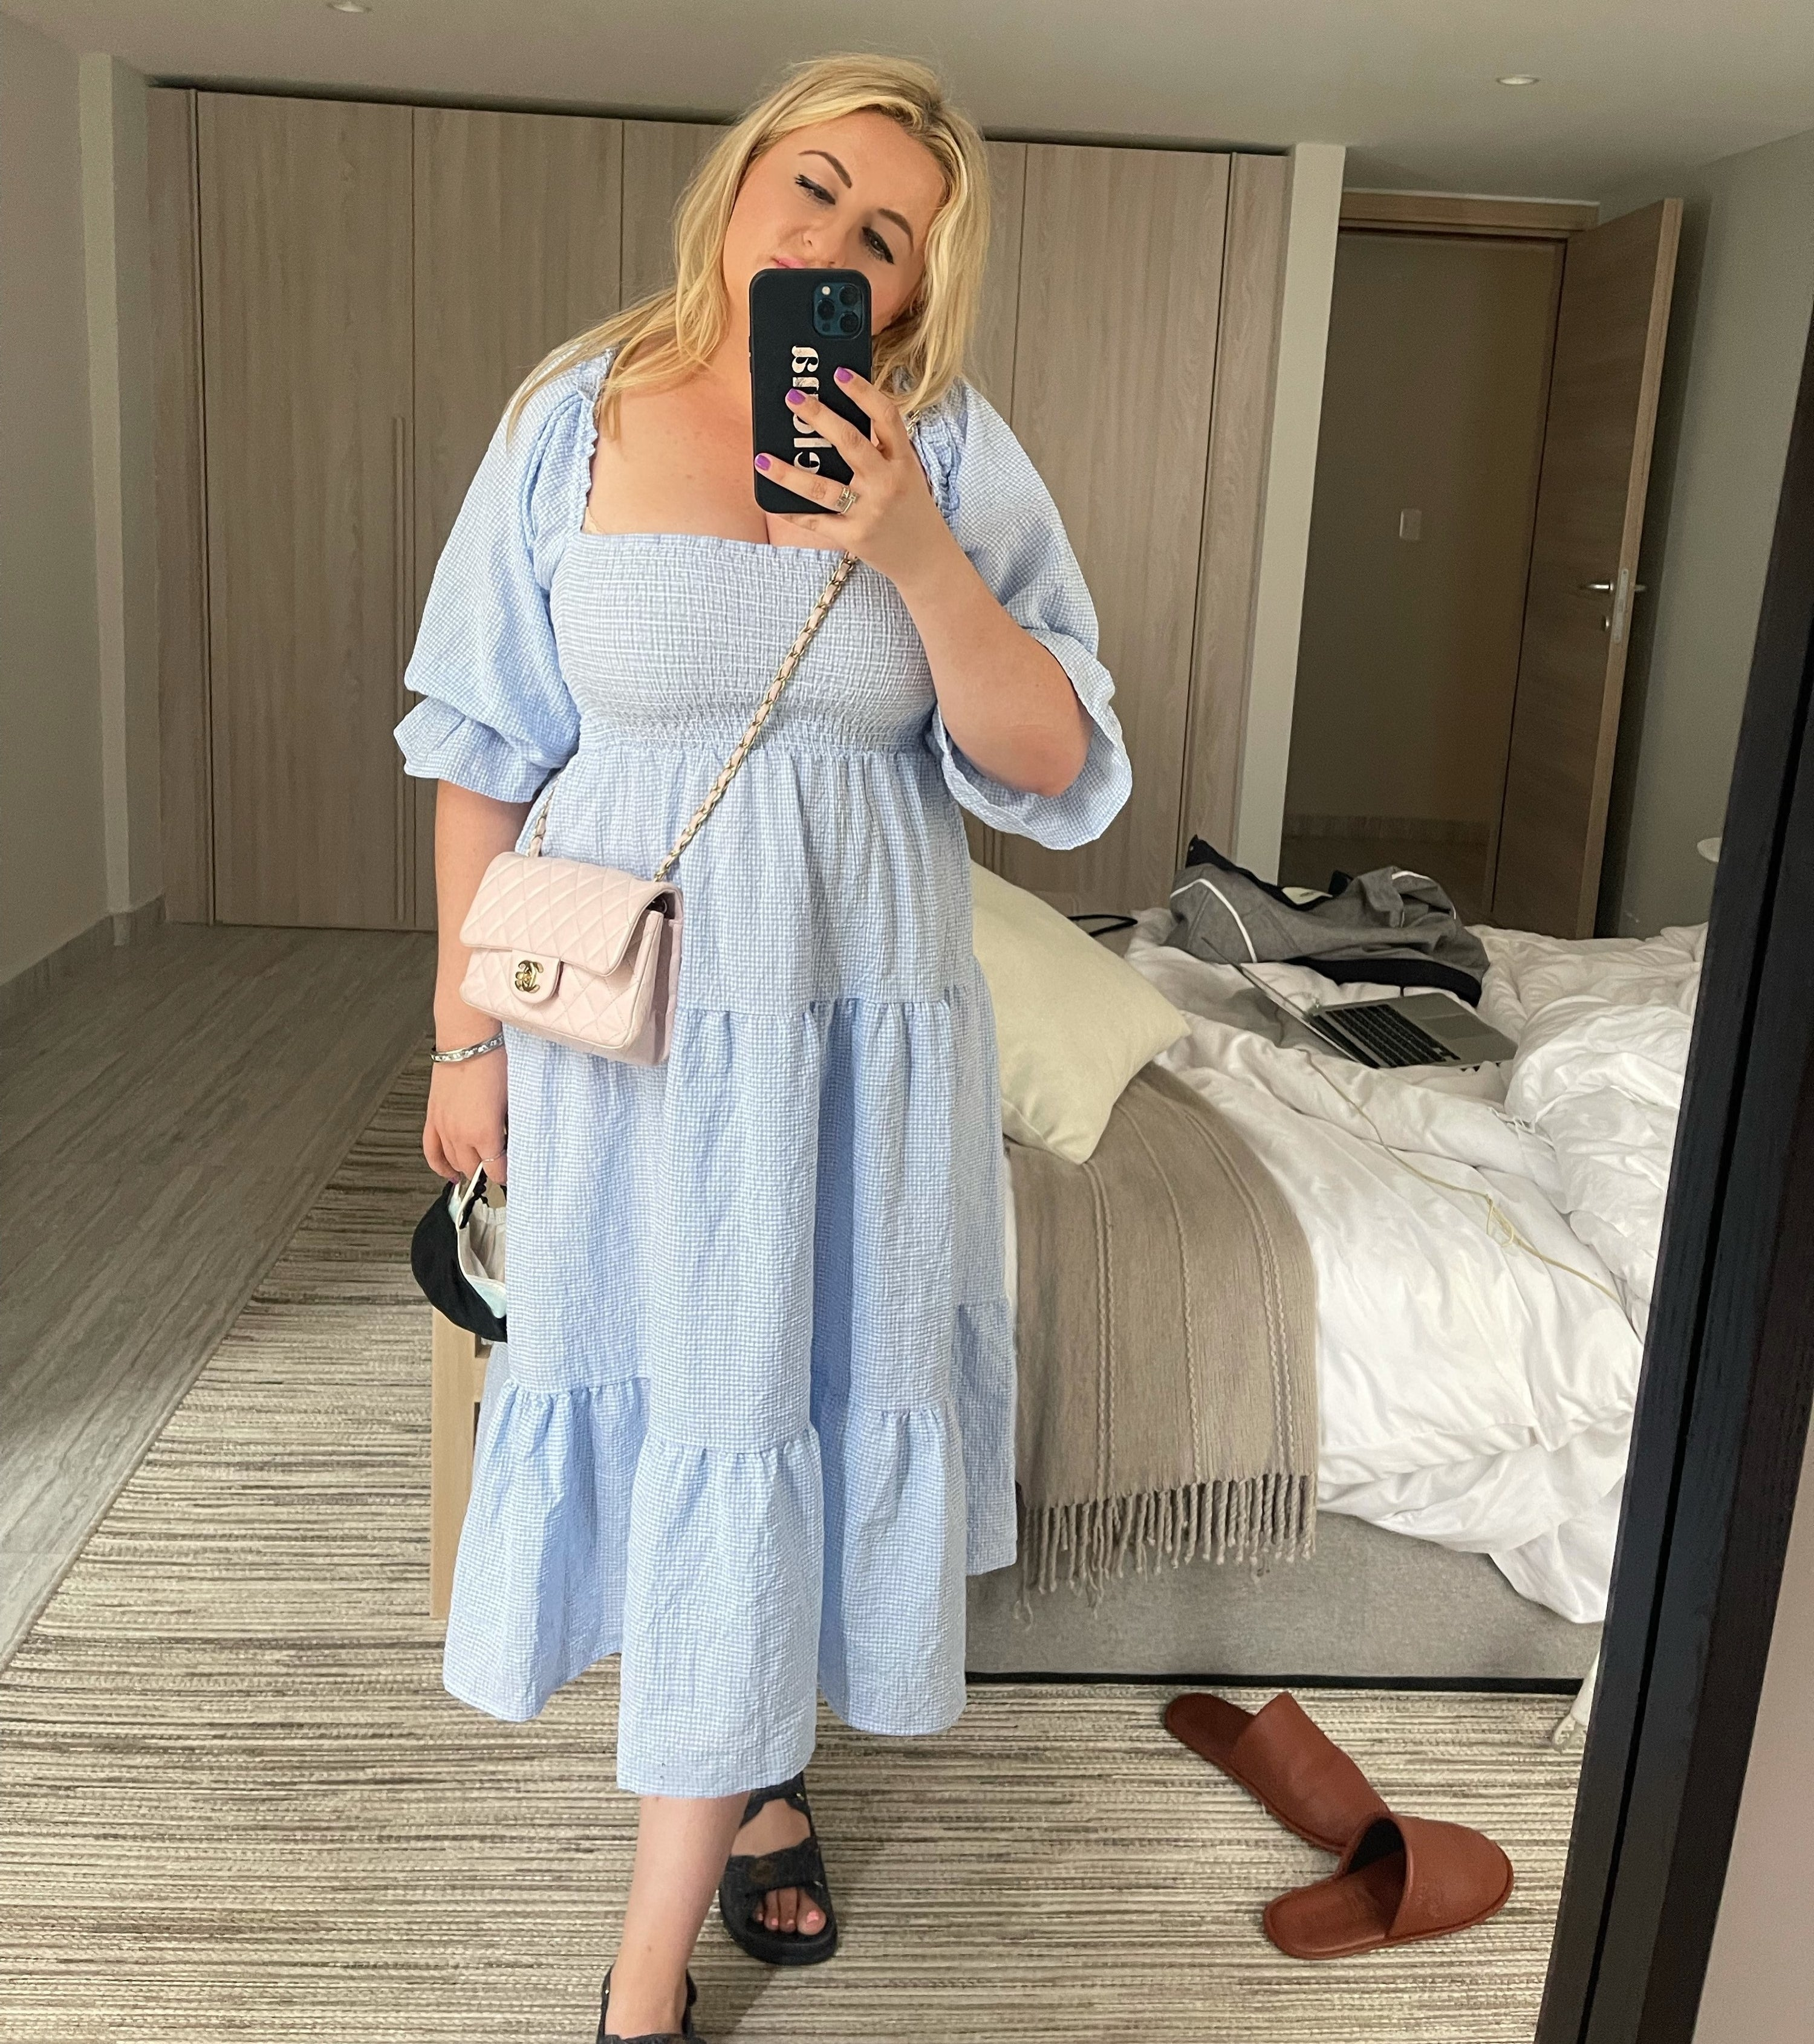 The author in the dress in blue